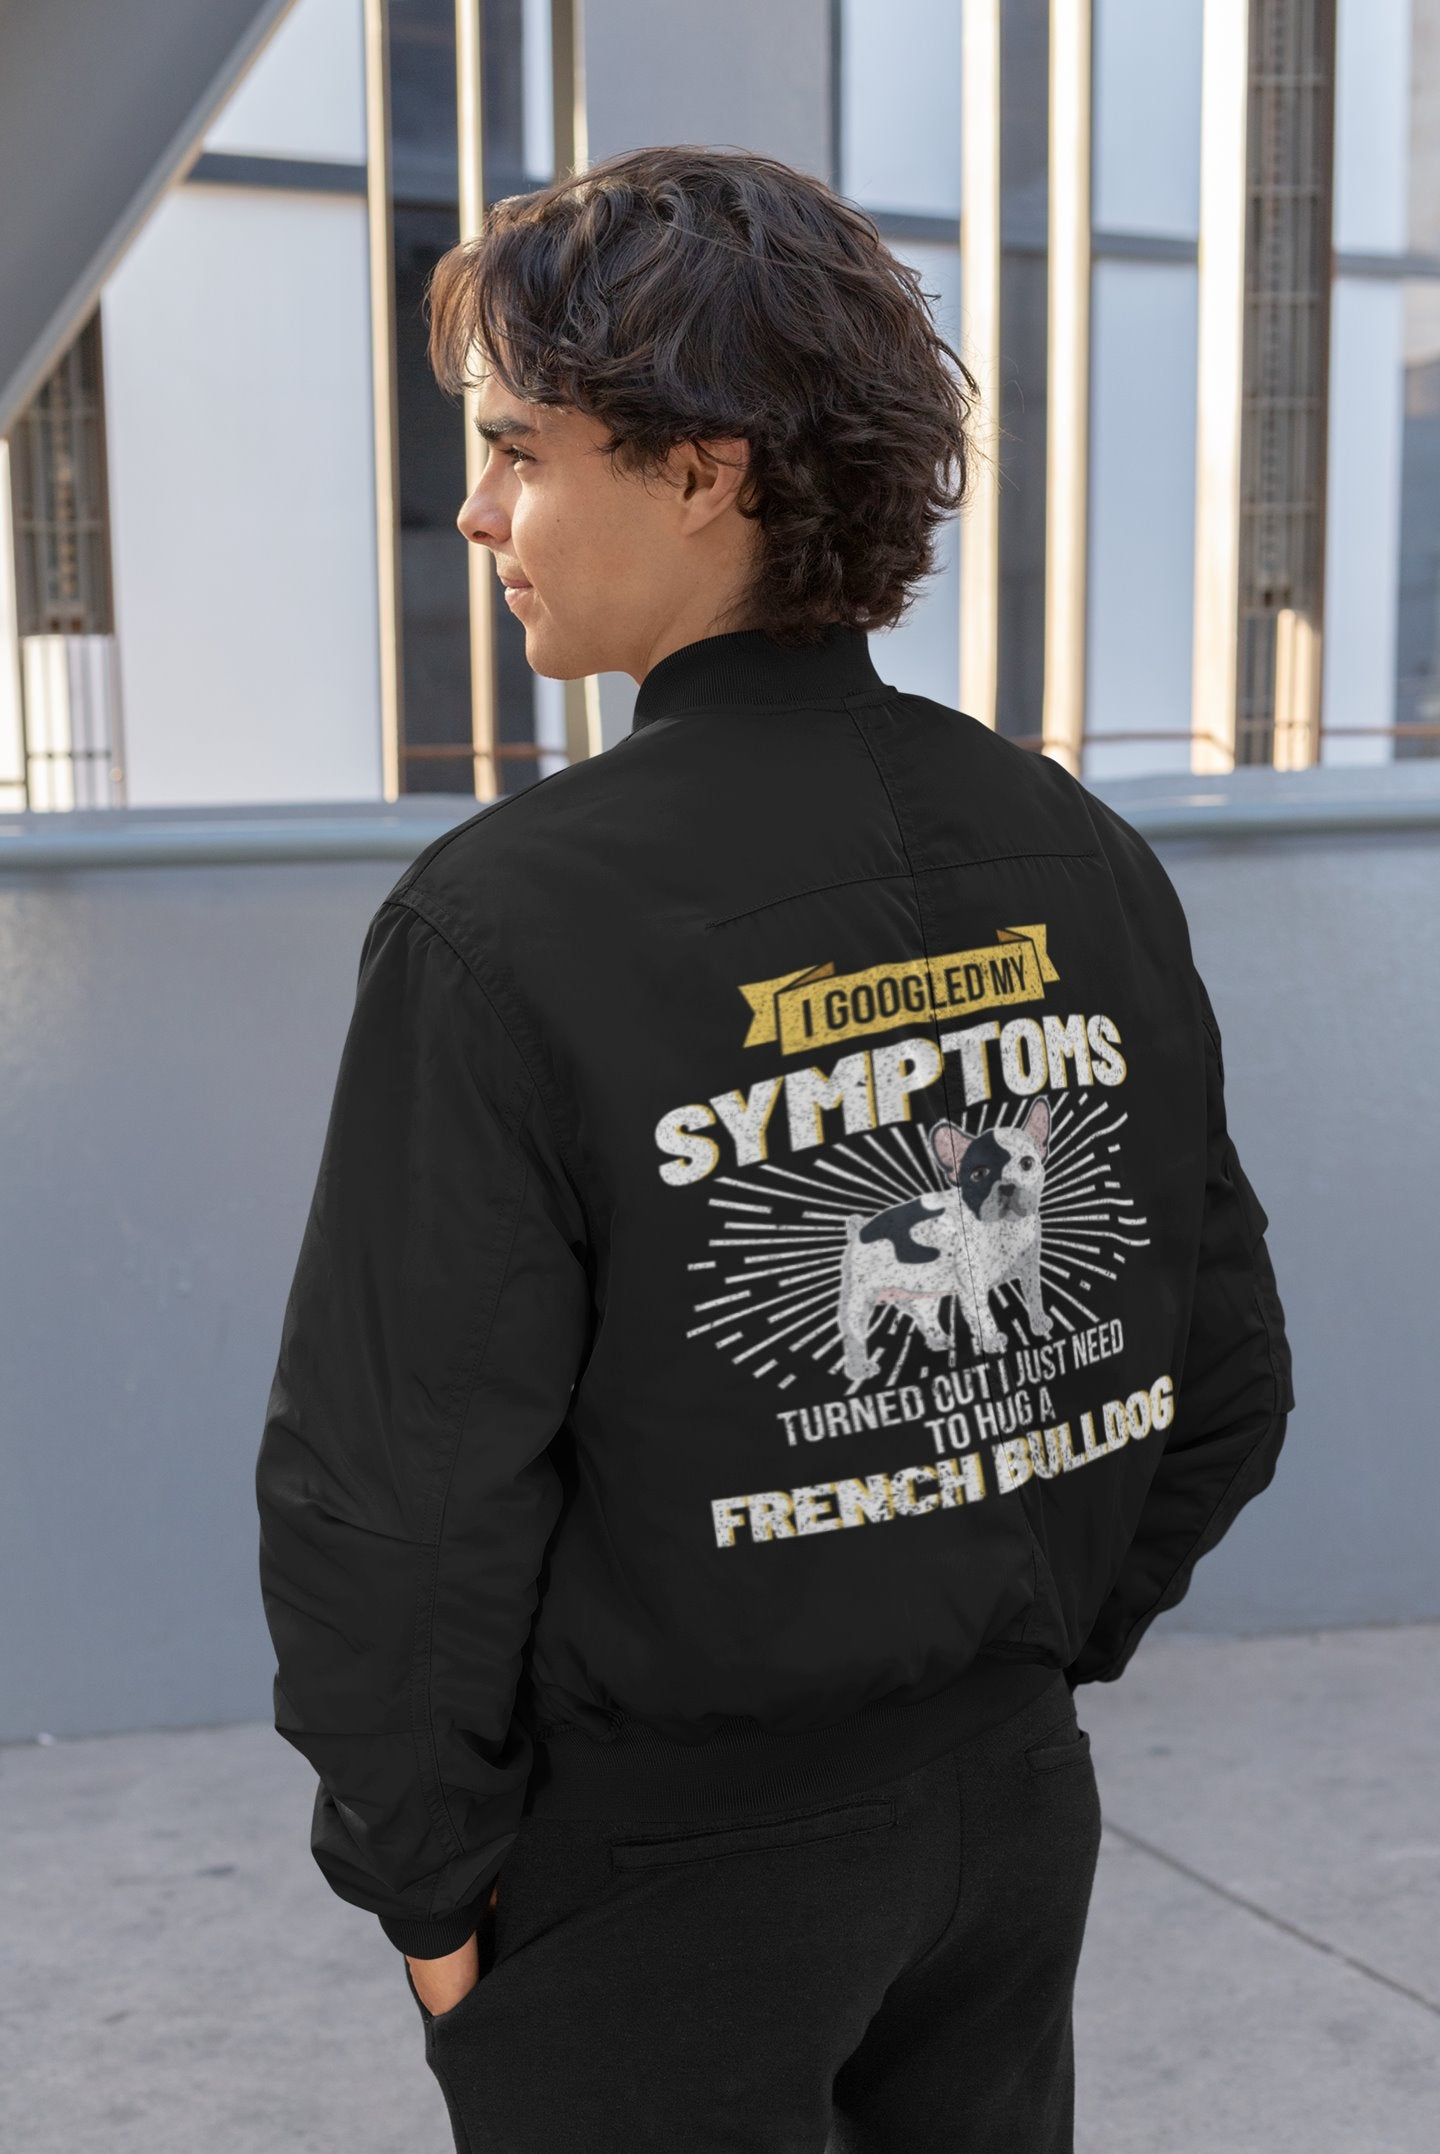 I Googled My Symptoms I Need To Hug A French Bulldog Men's Bomber Jacket